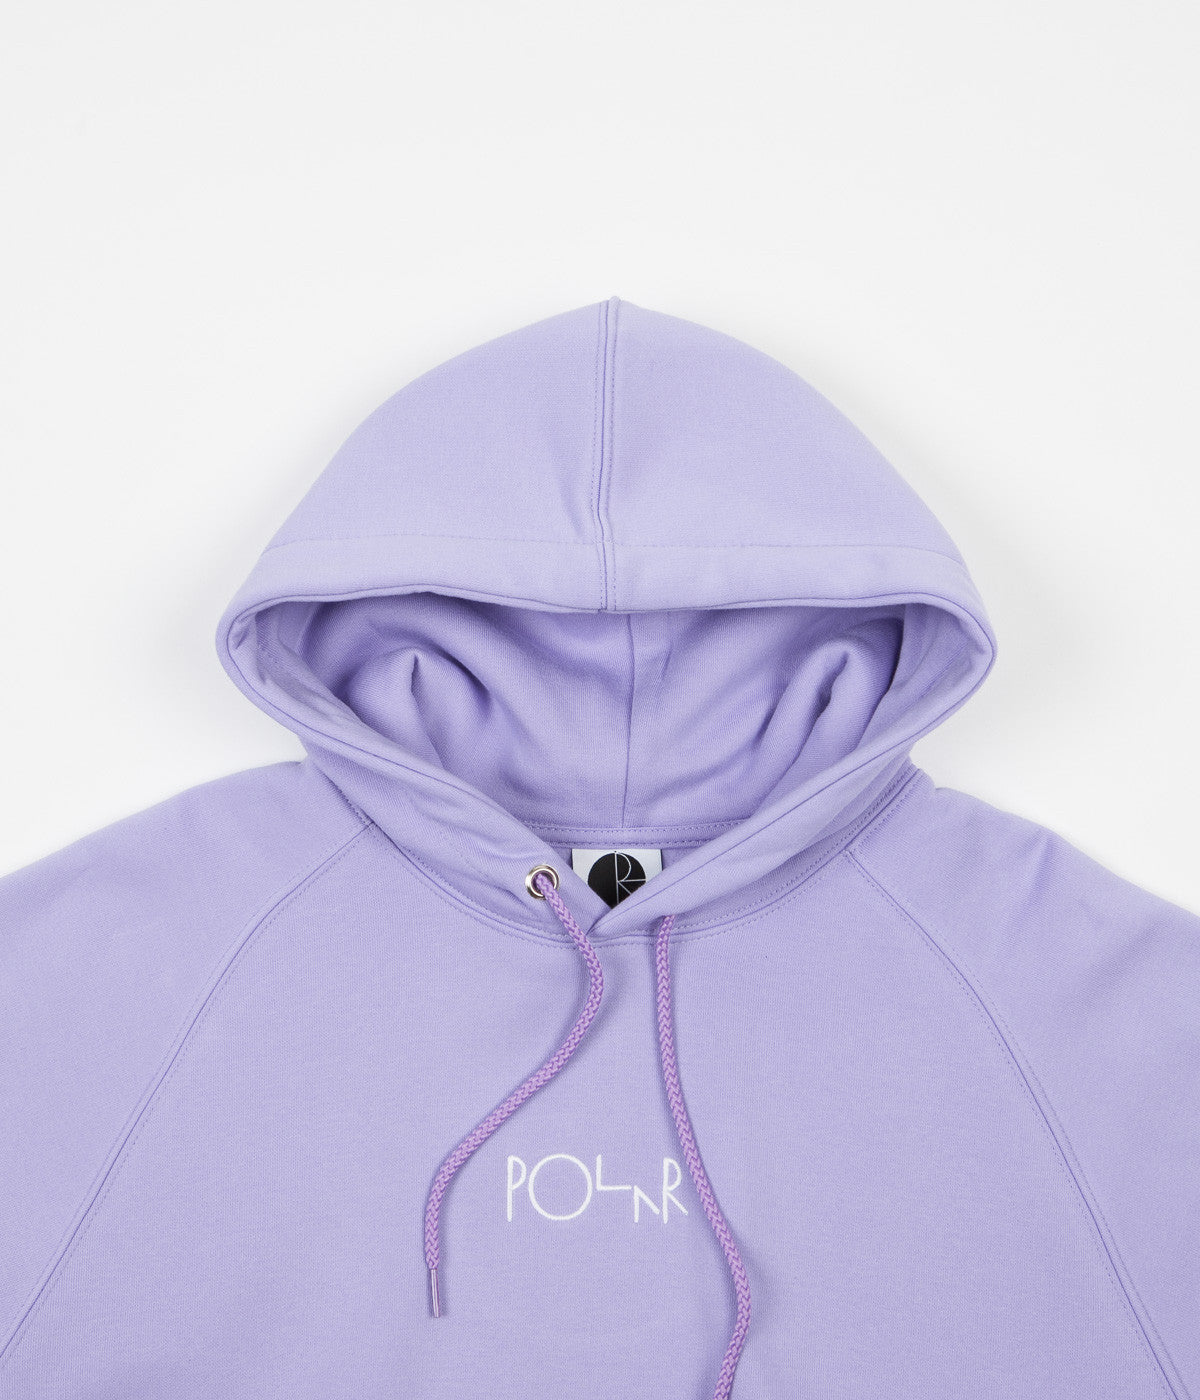 Polar Default Hooded Sweatshirt - Lavender